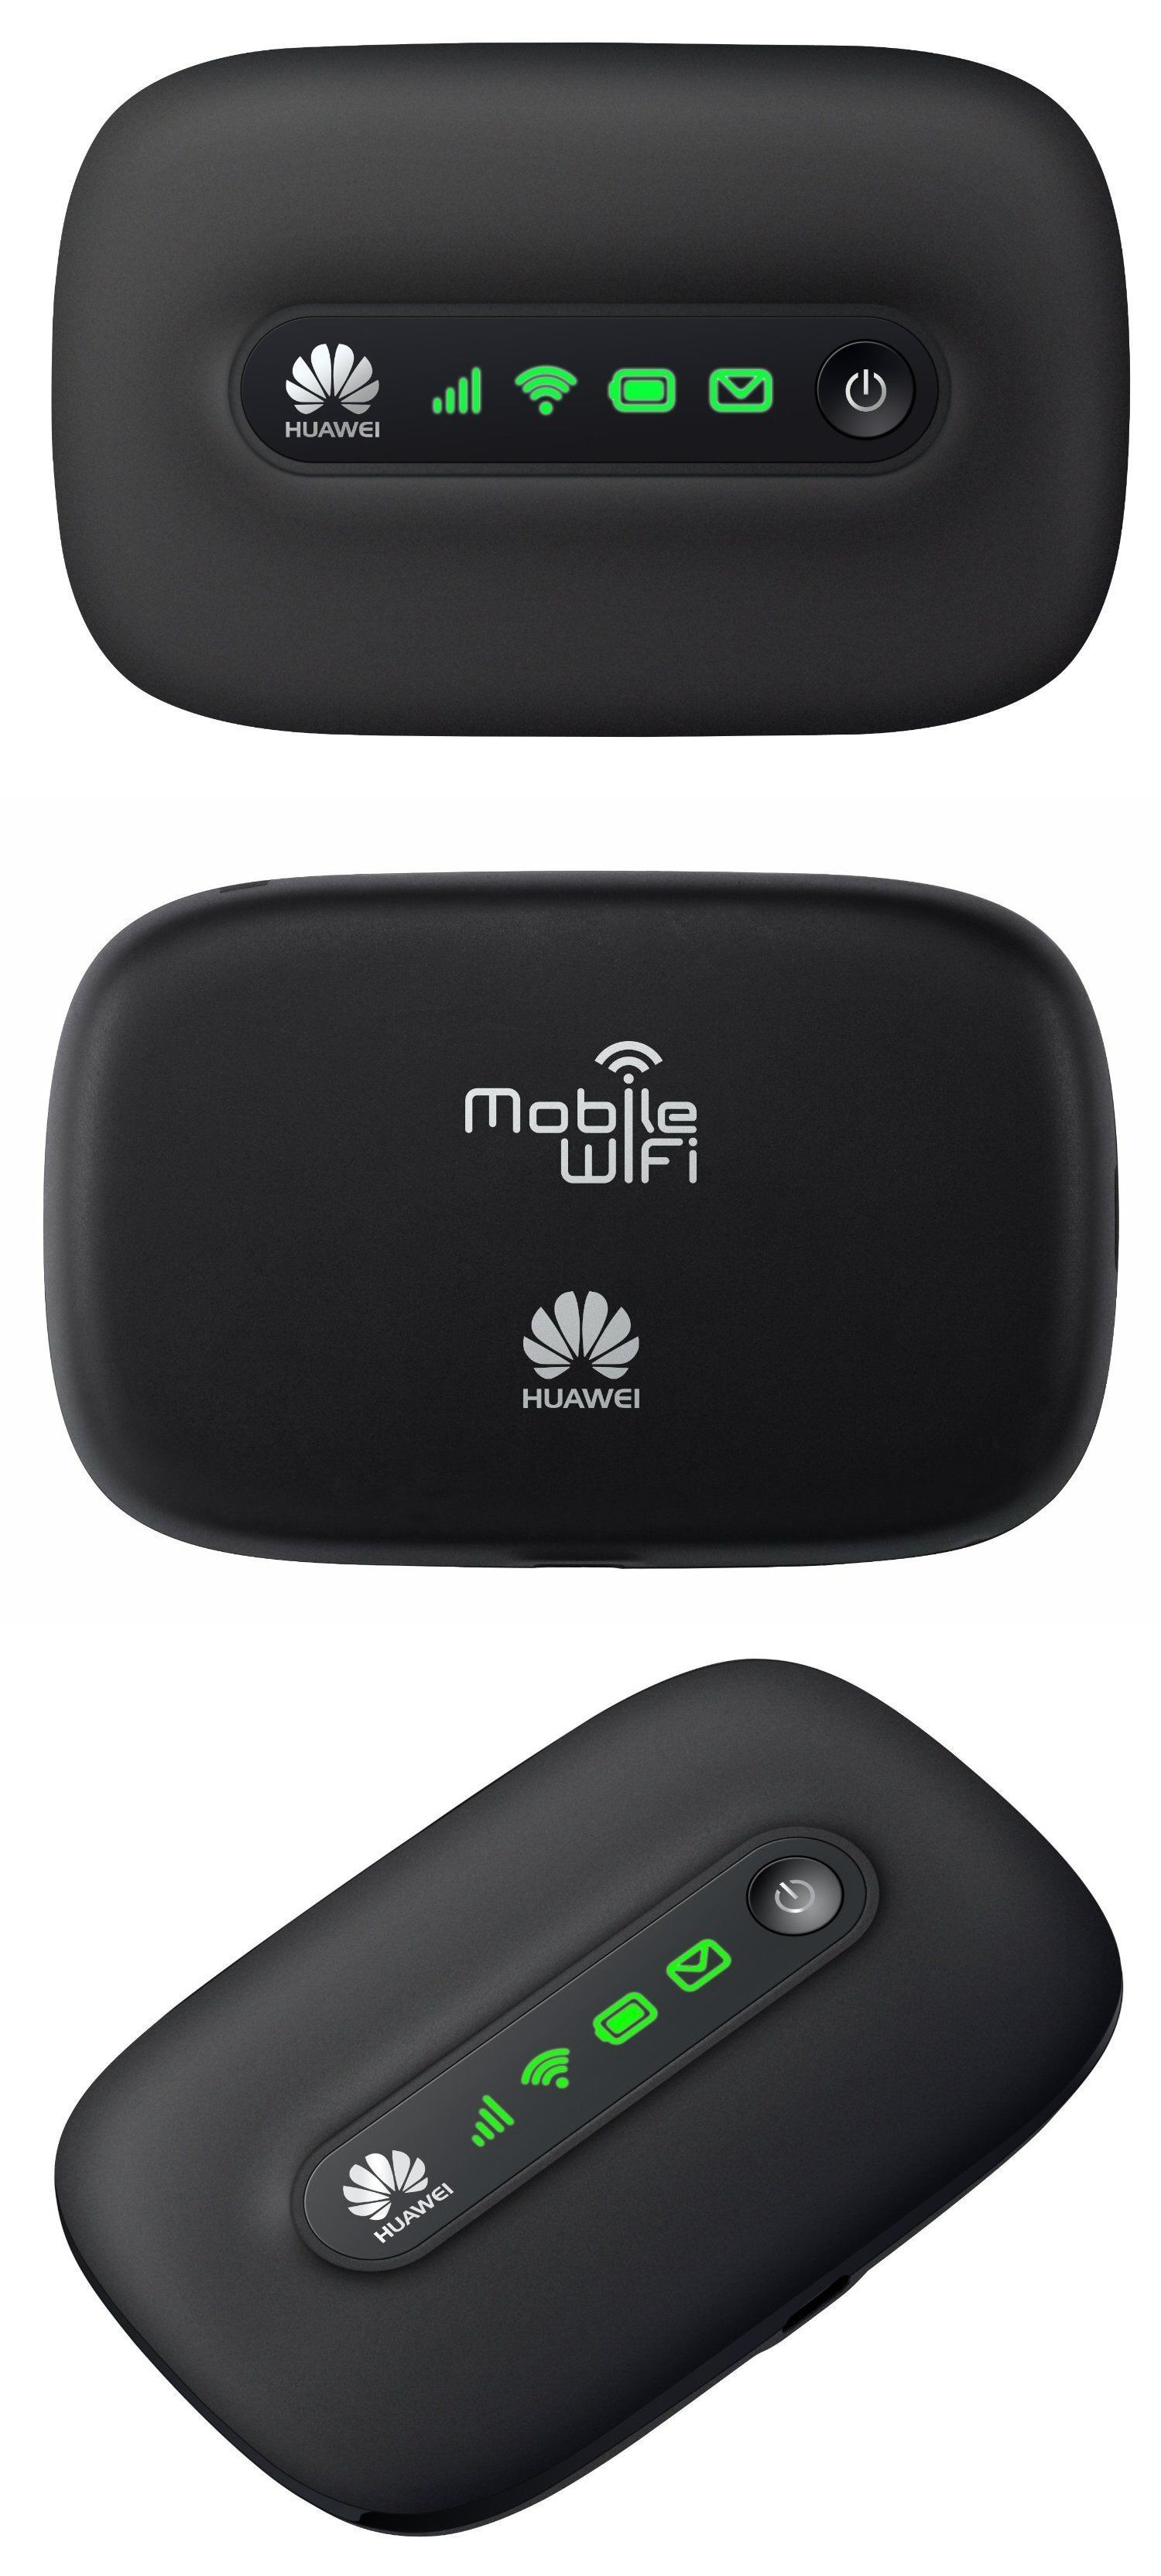 Mobile Broadband Devices 175710 Huawei E5331s2 21 Mbps